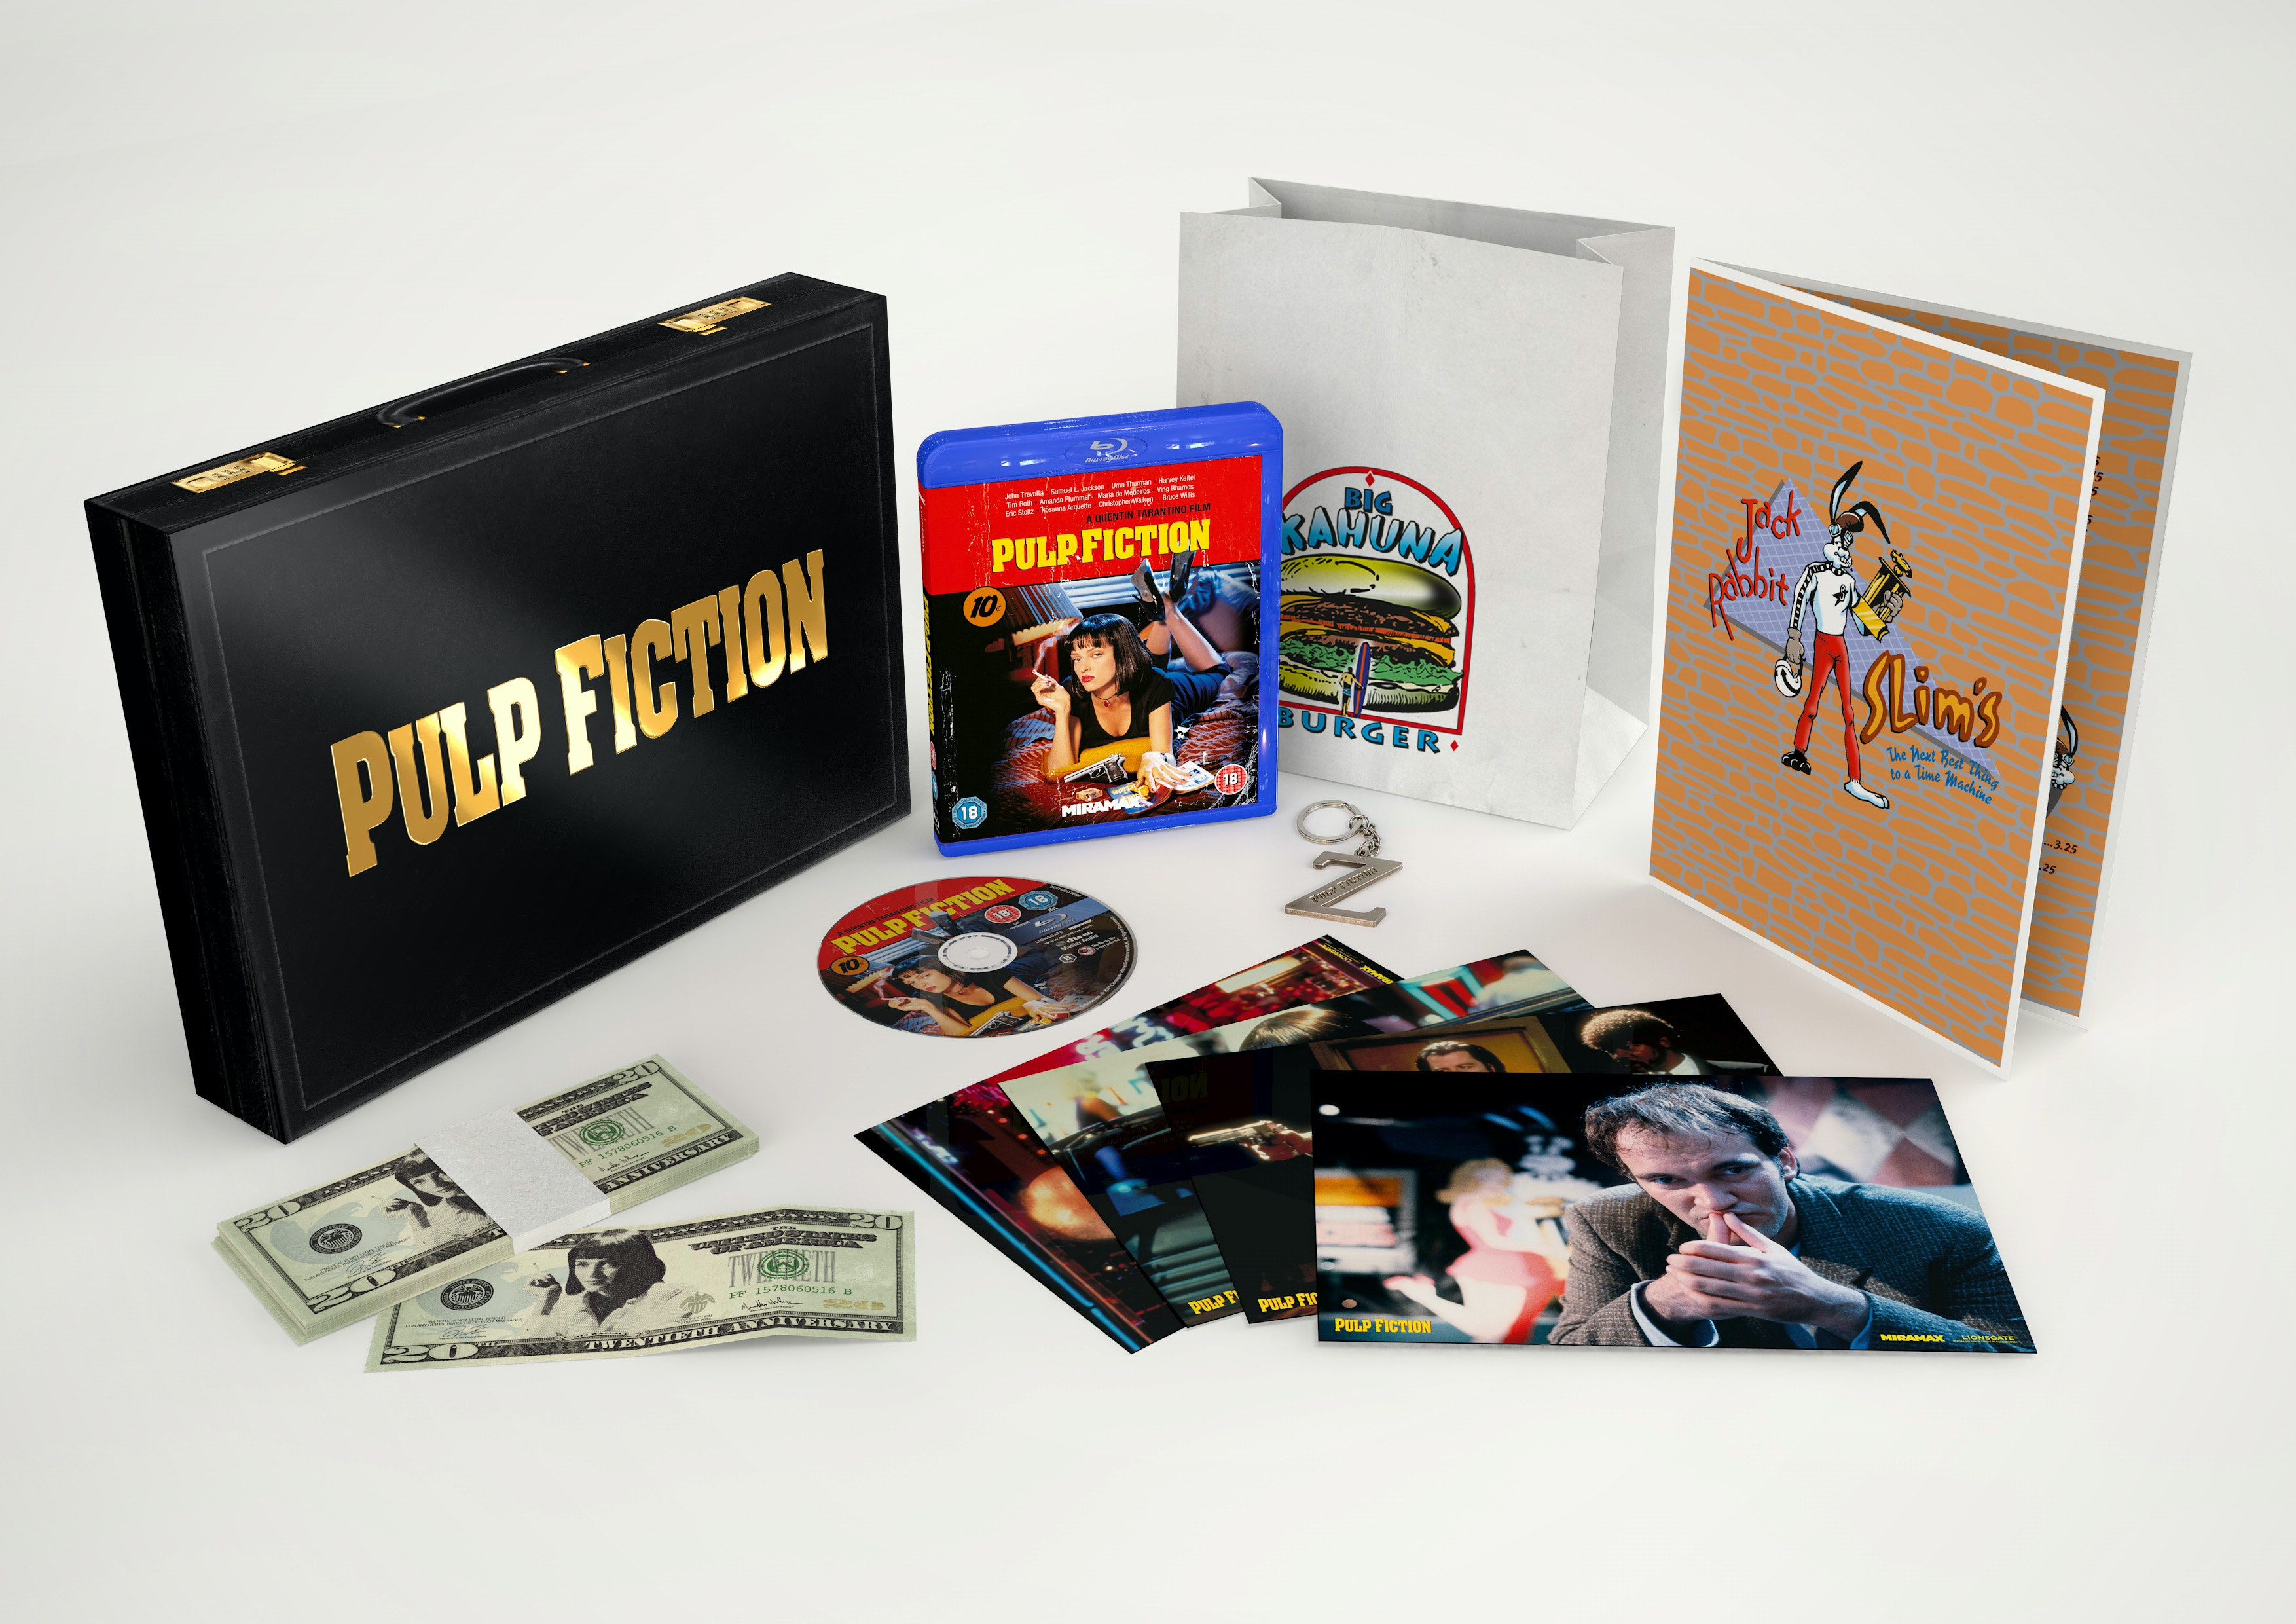 PULP FICTION 20TH ANNIVERSARY COLLECTORS BLURAY BOXSET sweepstakes